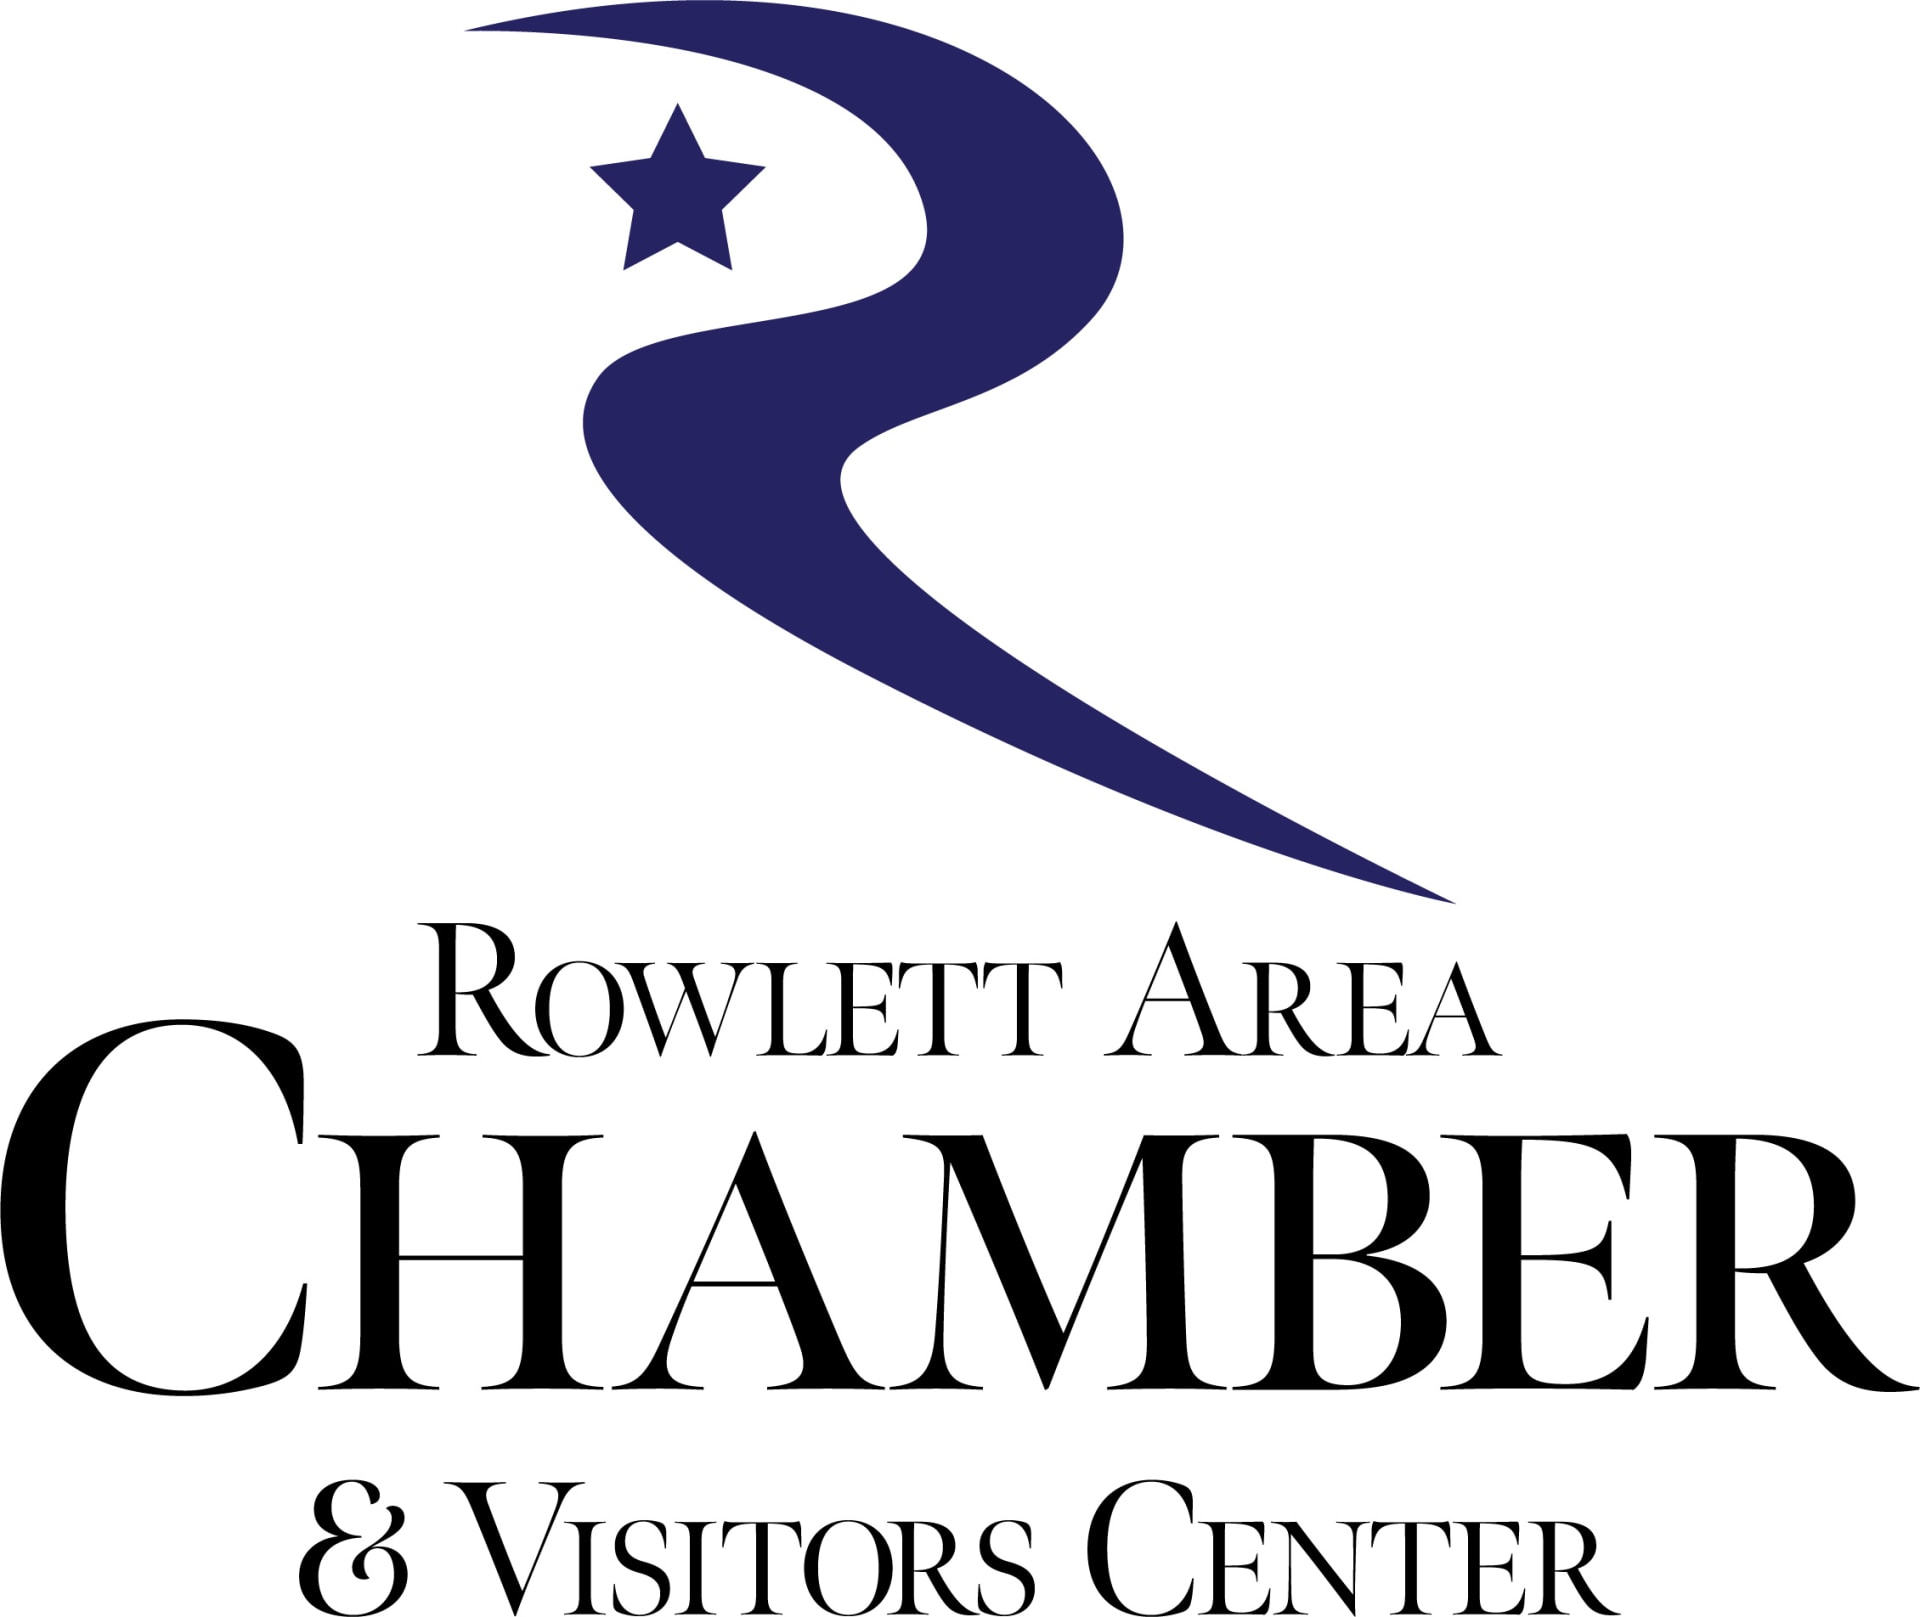 Rowlett Area Chamber & Visitors Center Logo